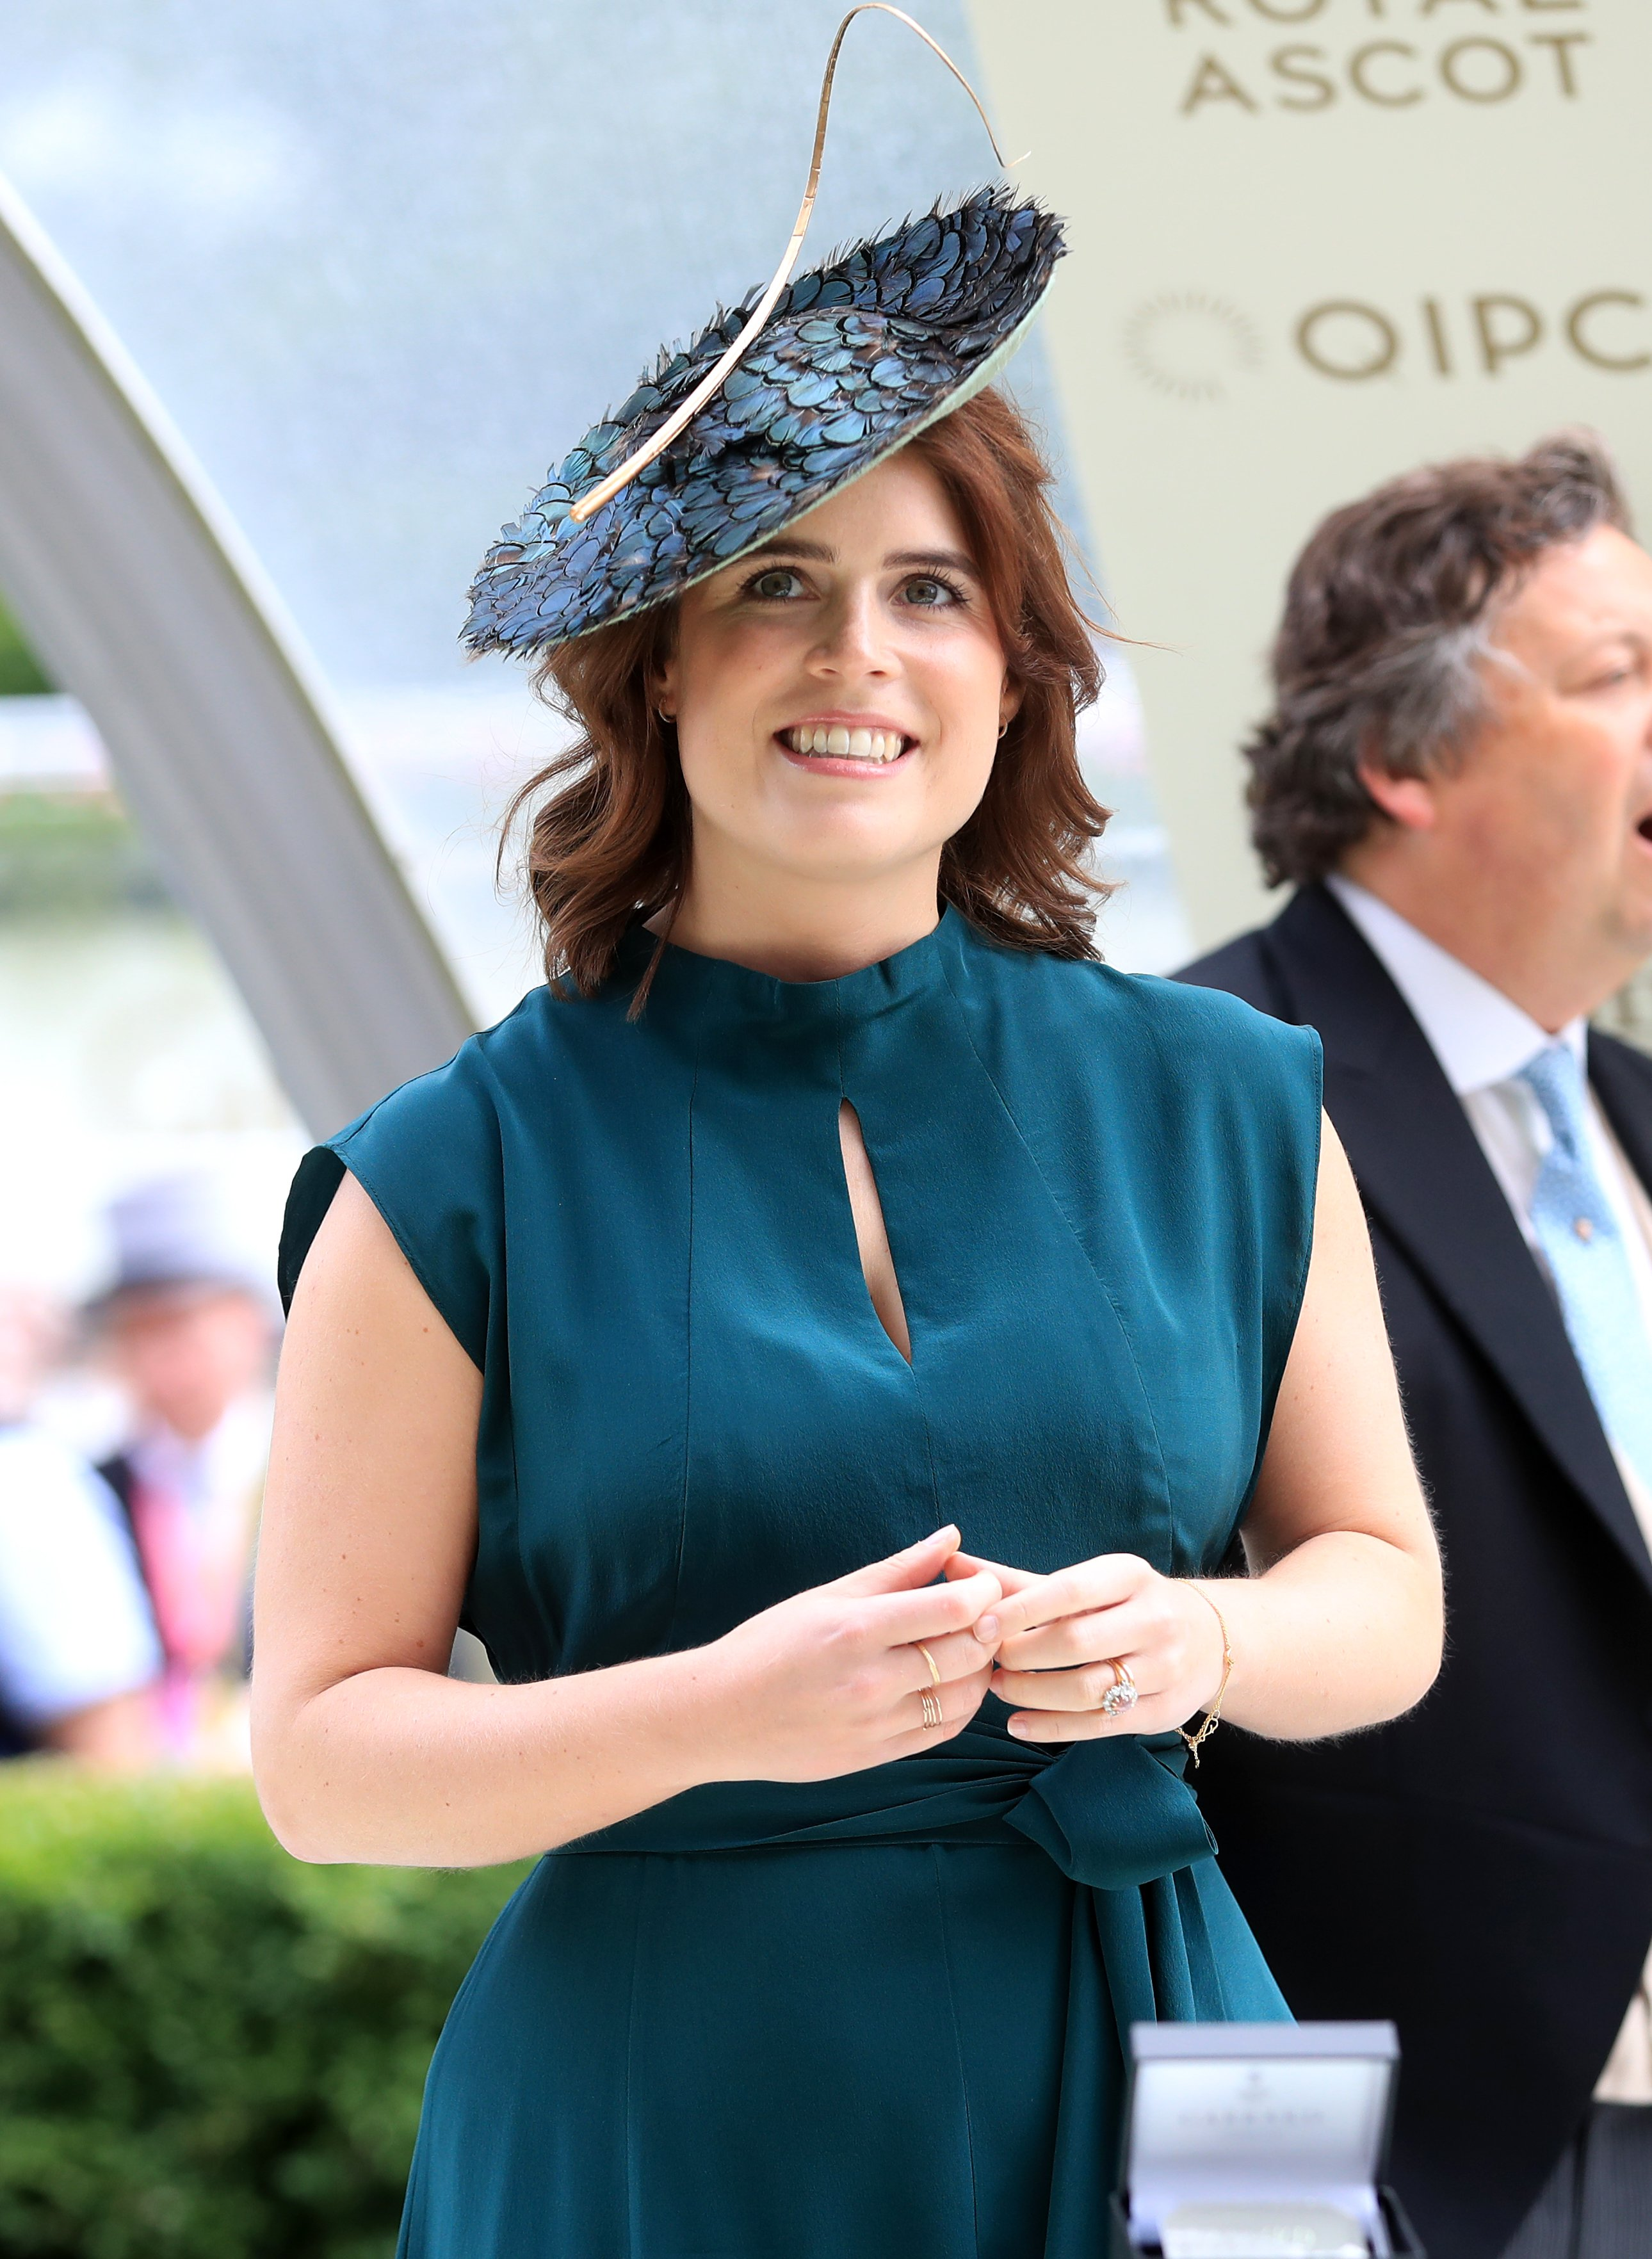 Princess Eugenie pictured at the winners enclosure during day three of Royal Ascot, 2019, Ascot, United Kingdom.   Photo: Getty Images